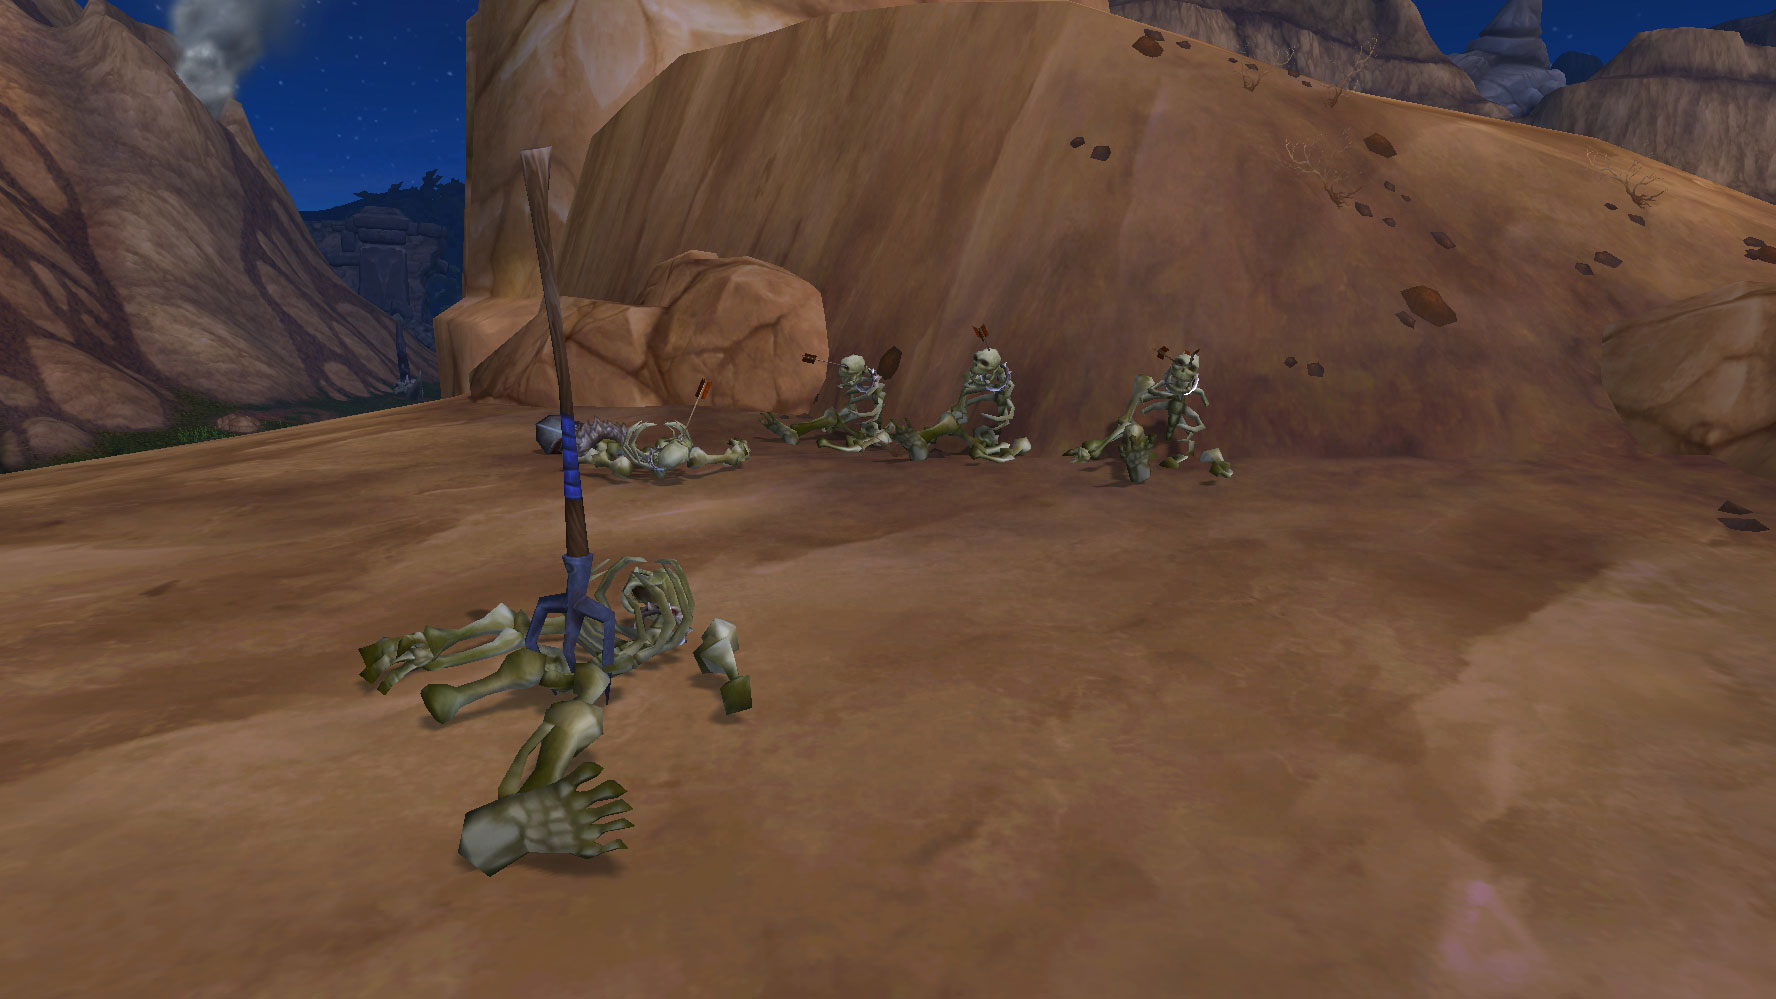 Screenshot de World of Warcraft: Warlords of Draenor.